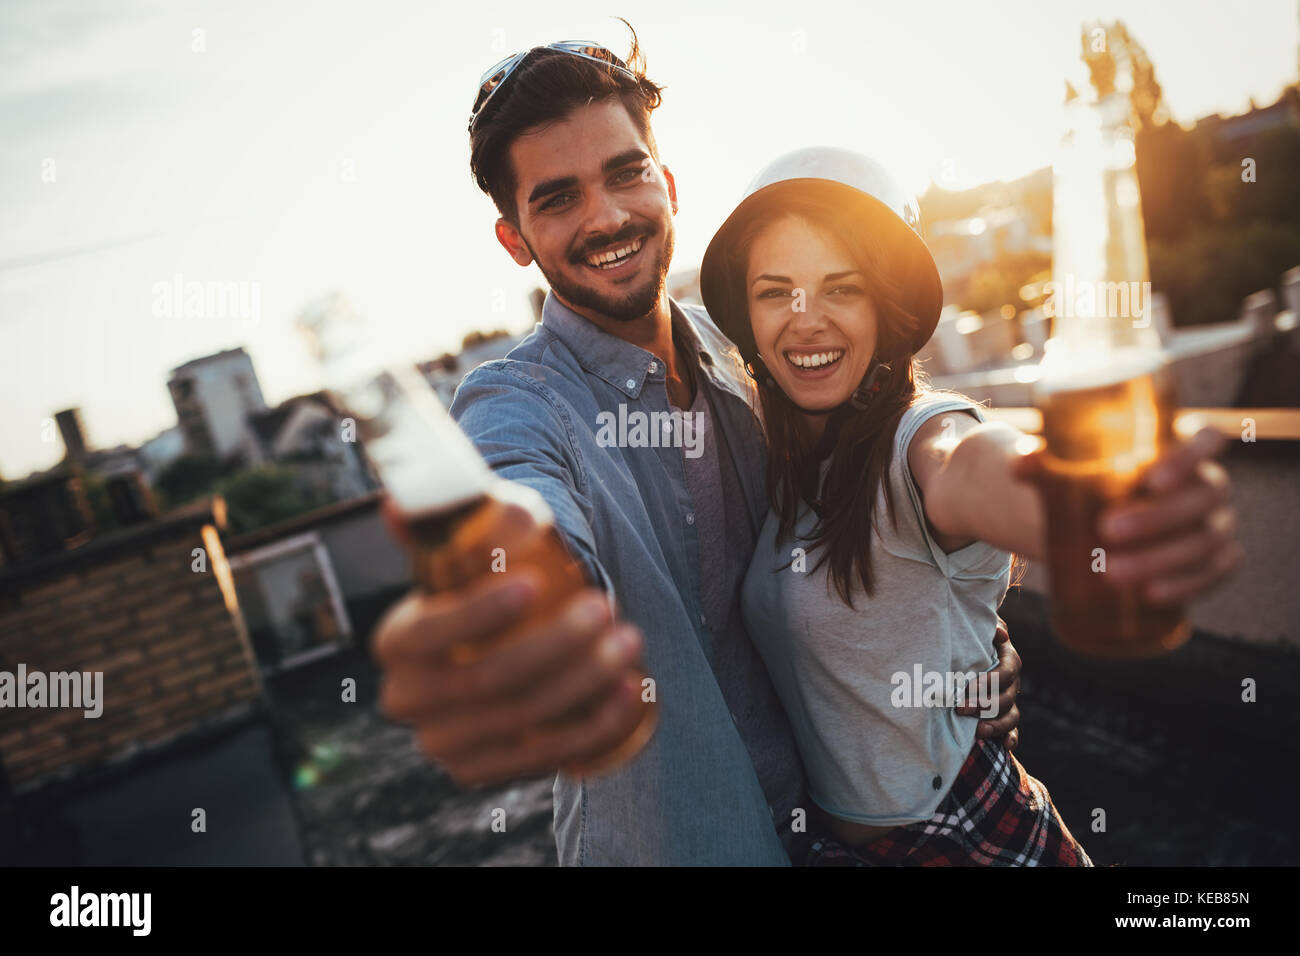 Young happy couple toasting with beer outdoors Photo Stock